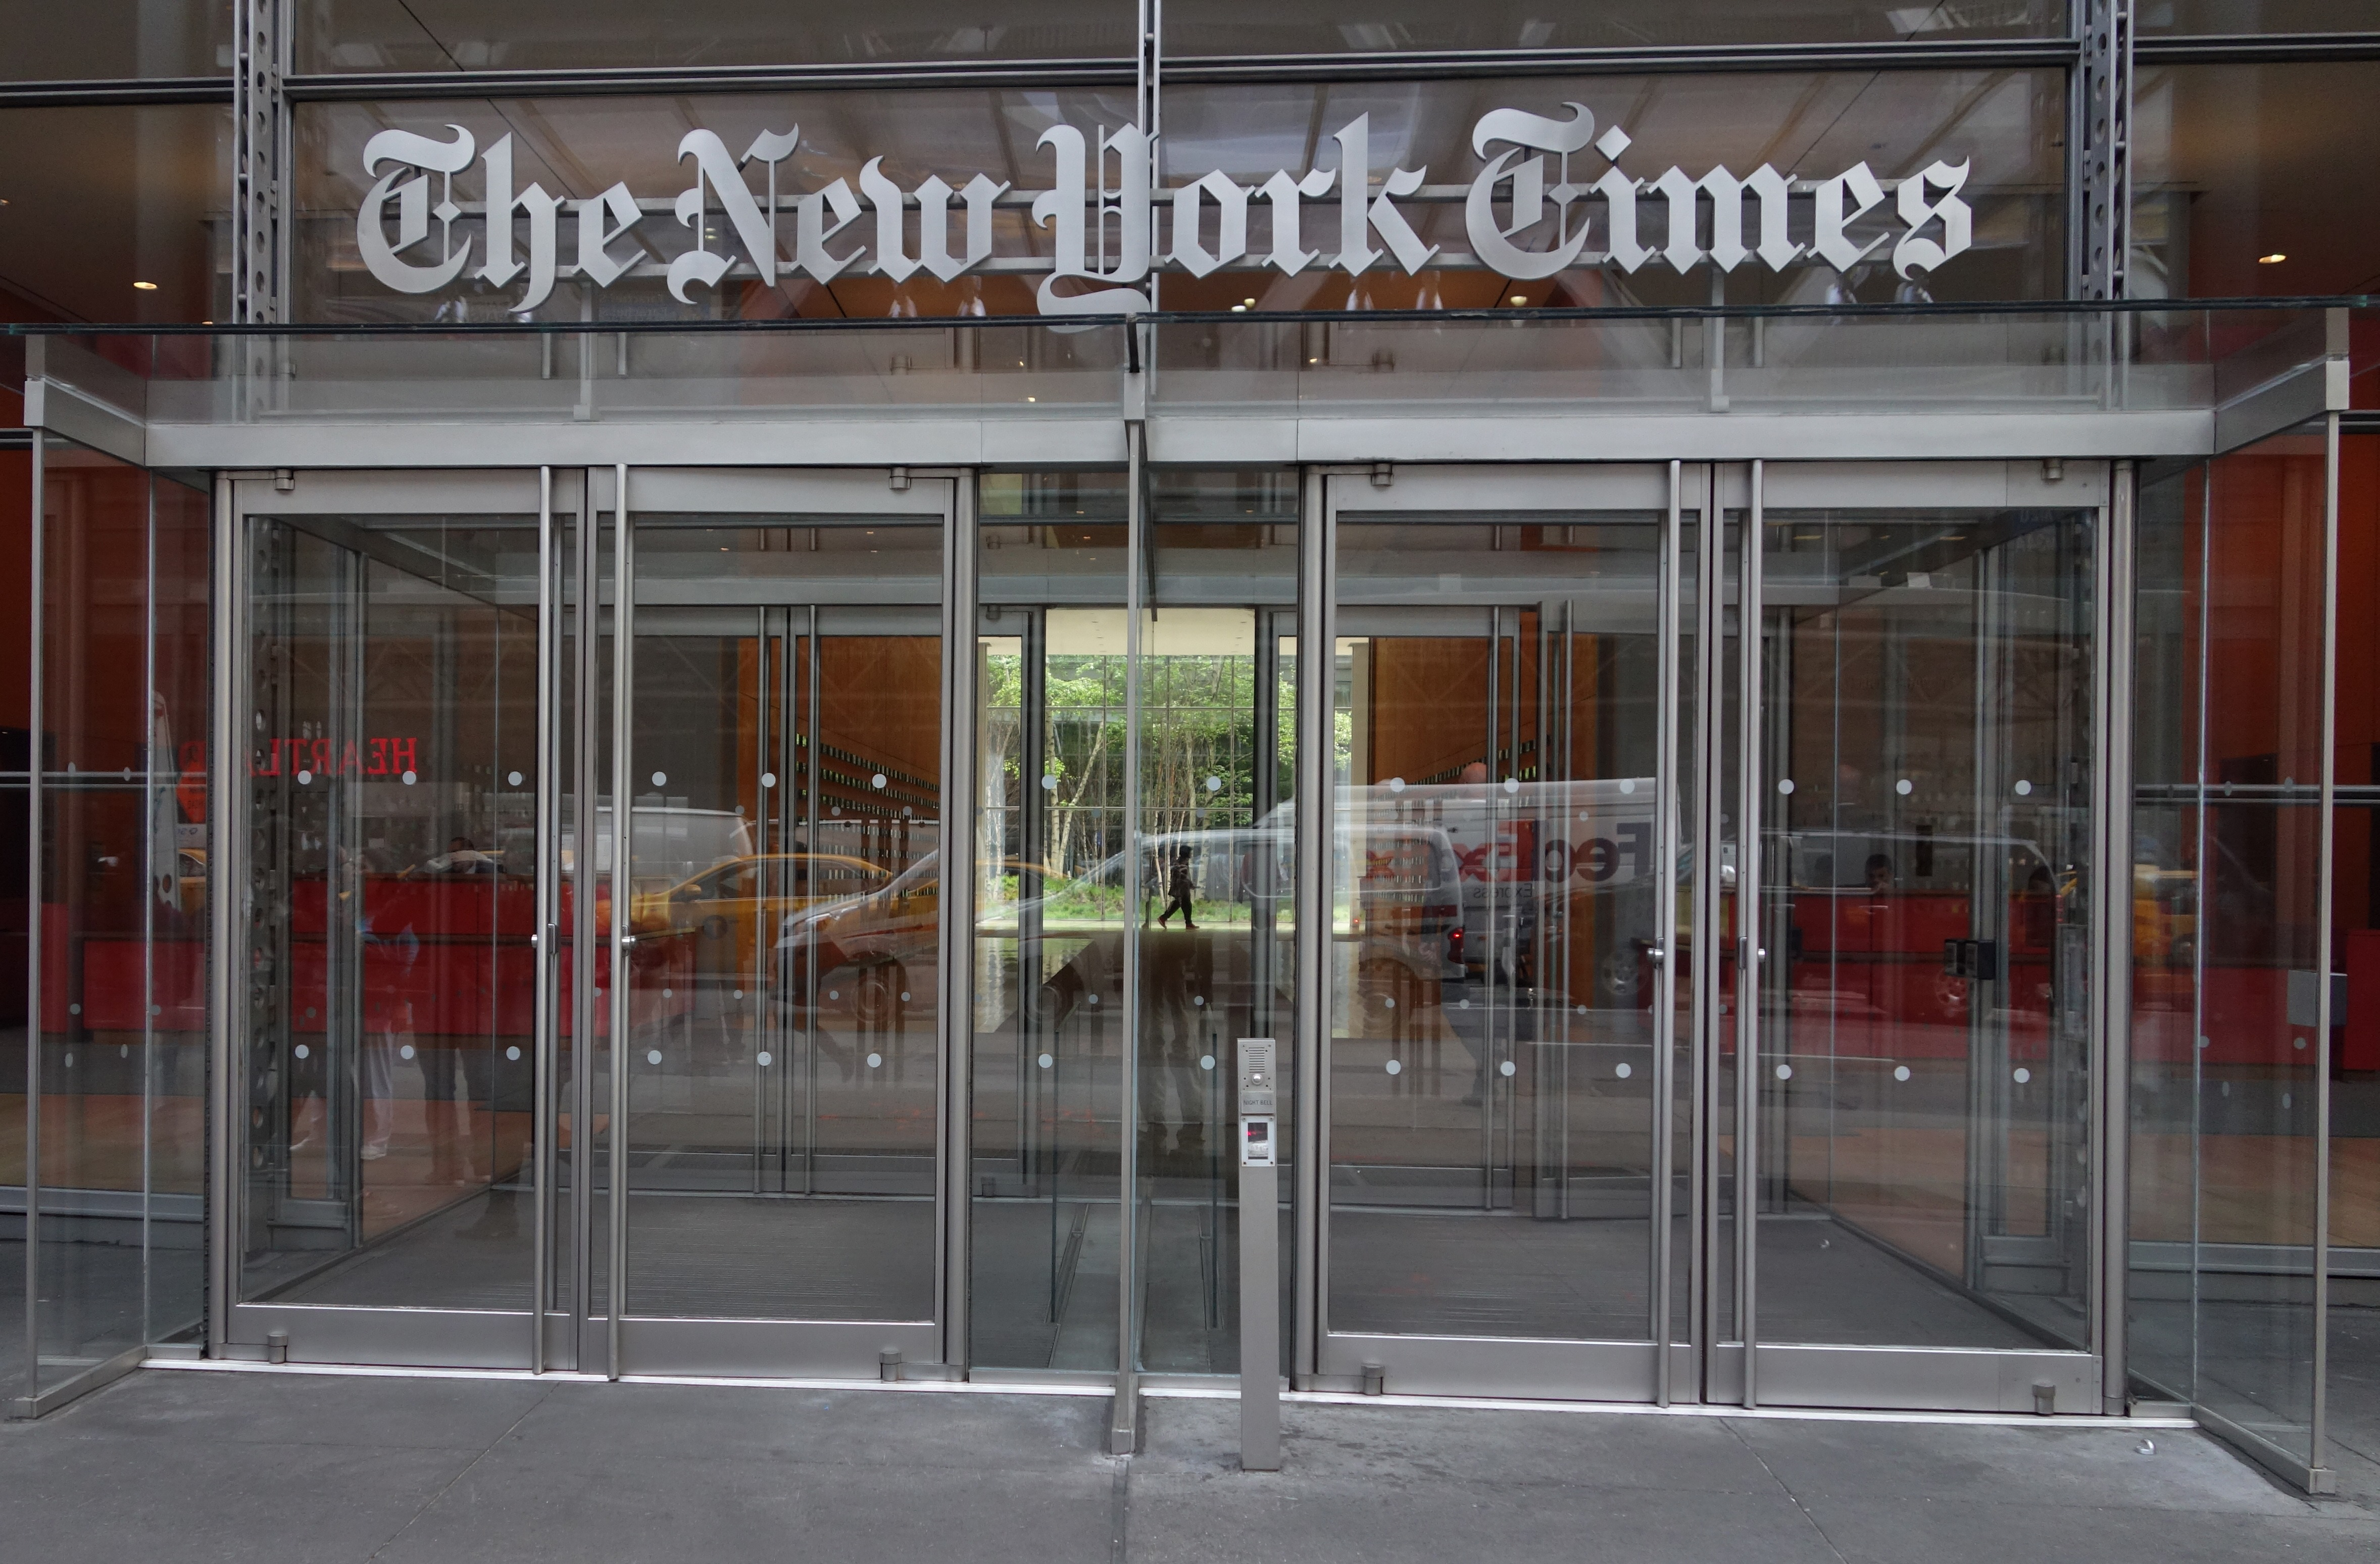 New York Times Working on a Story on David Barstow